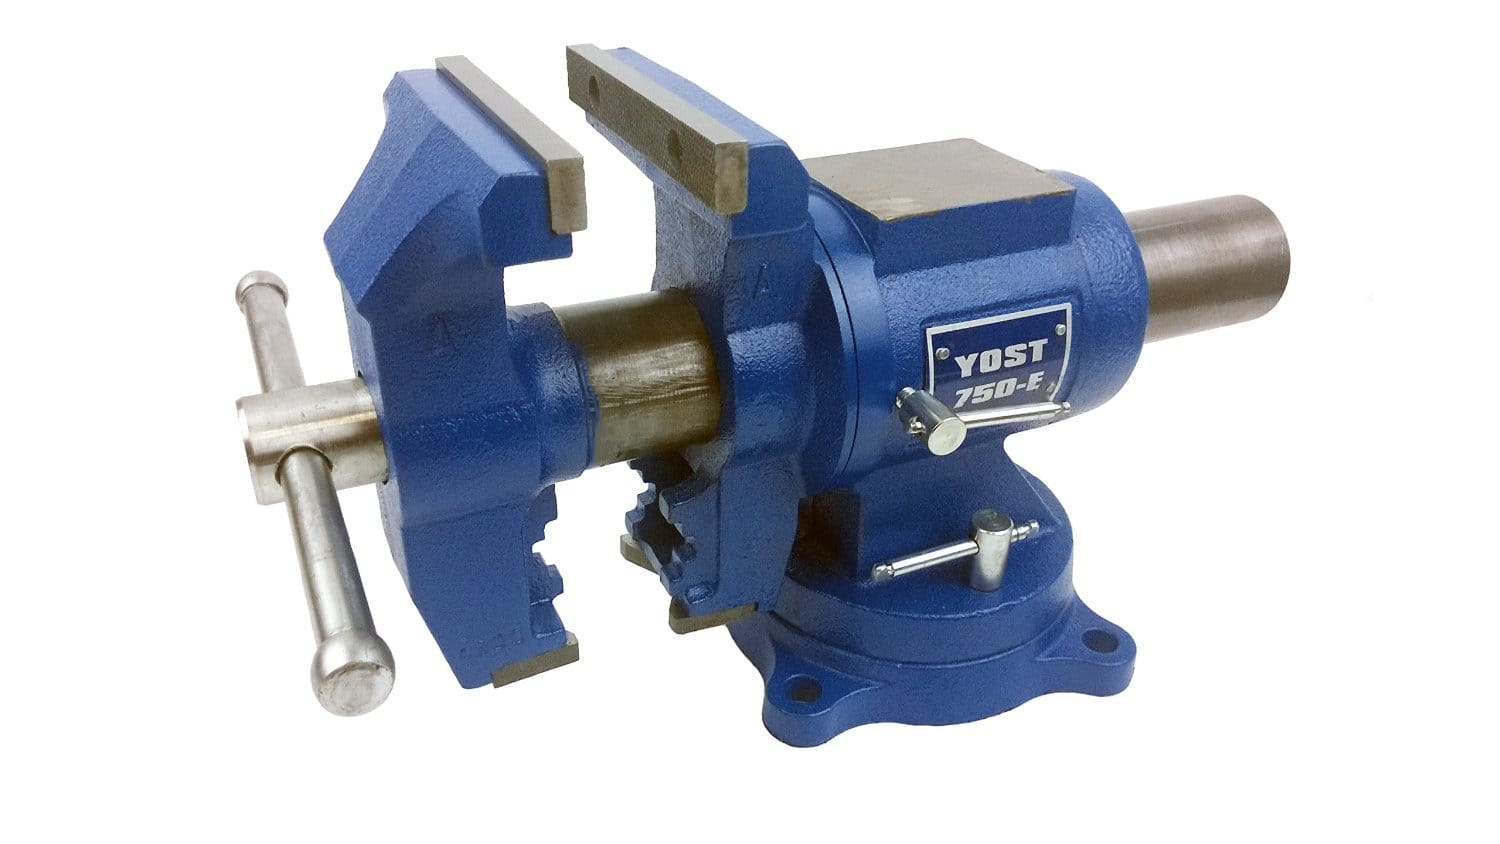 Yost 750-E Rotating Bench Vise - Slickdeals.net